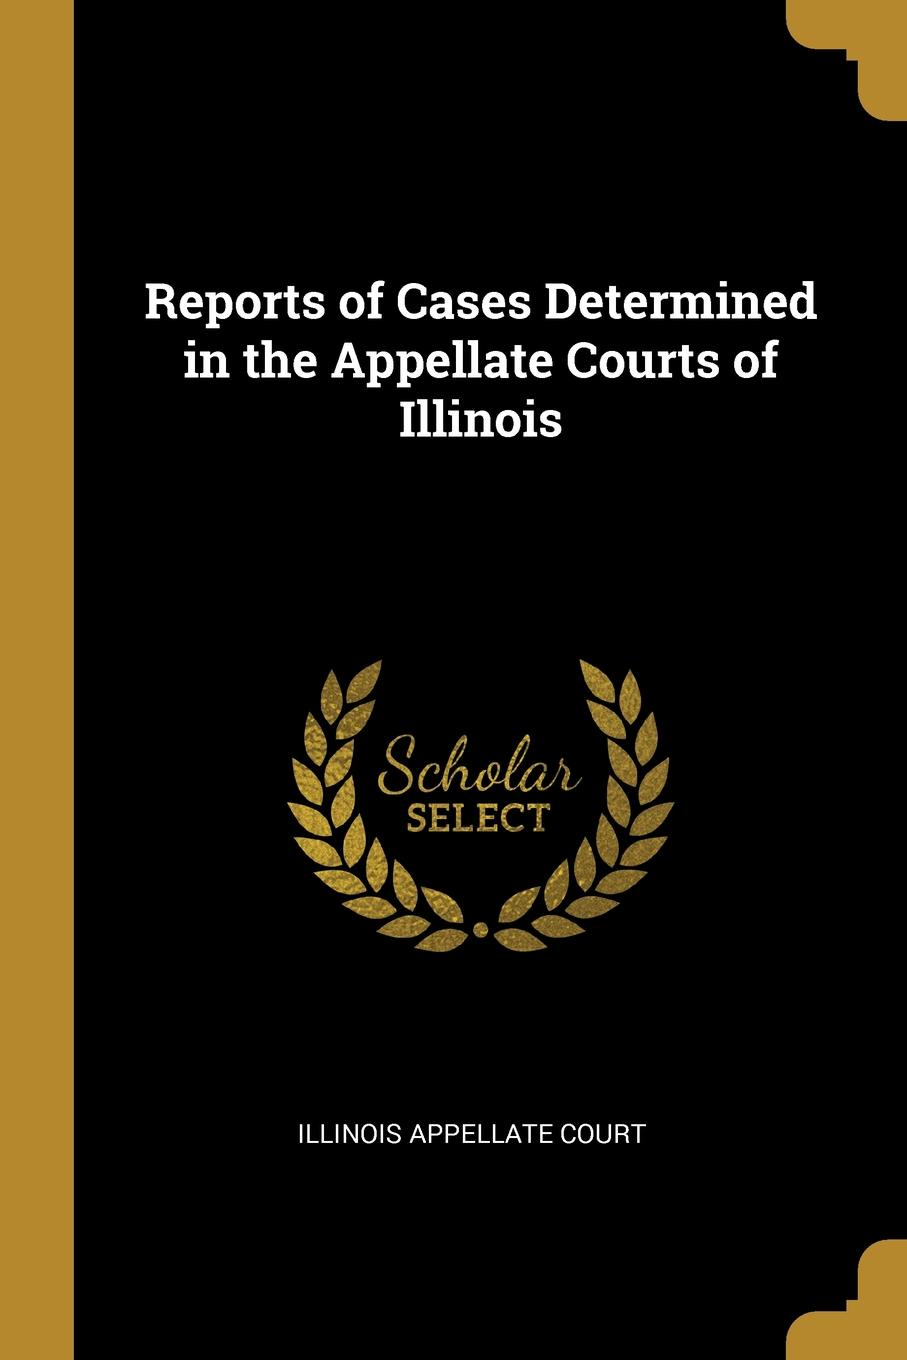 Illinois Appellate Court Reports of Cases Determined in the Appellate Courts of Illinois